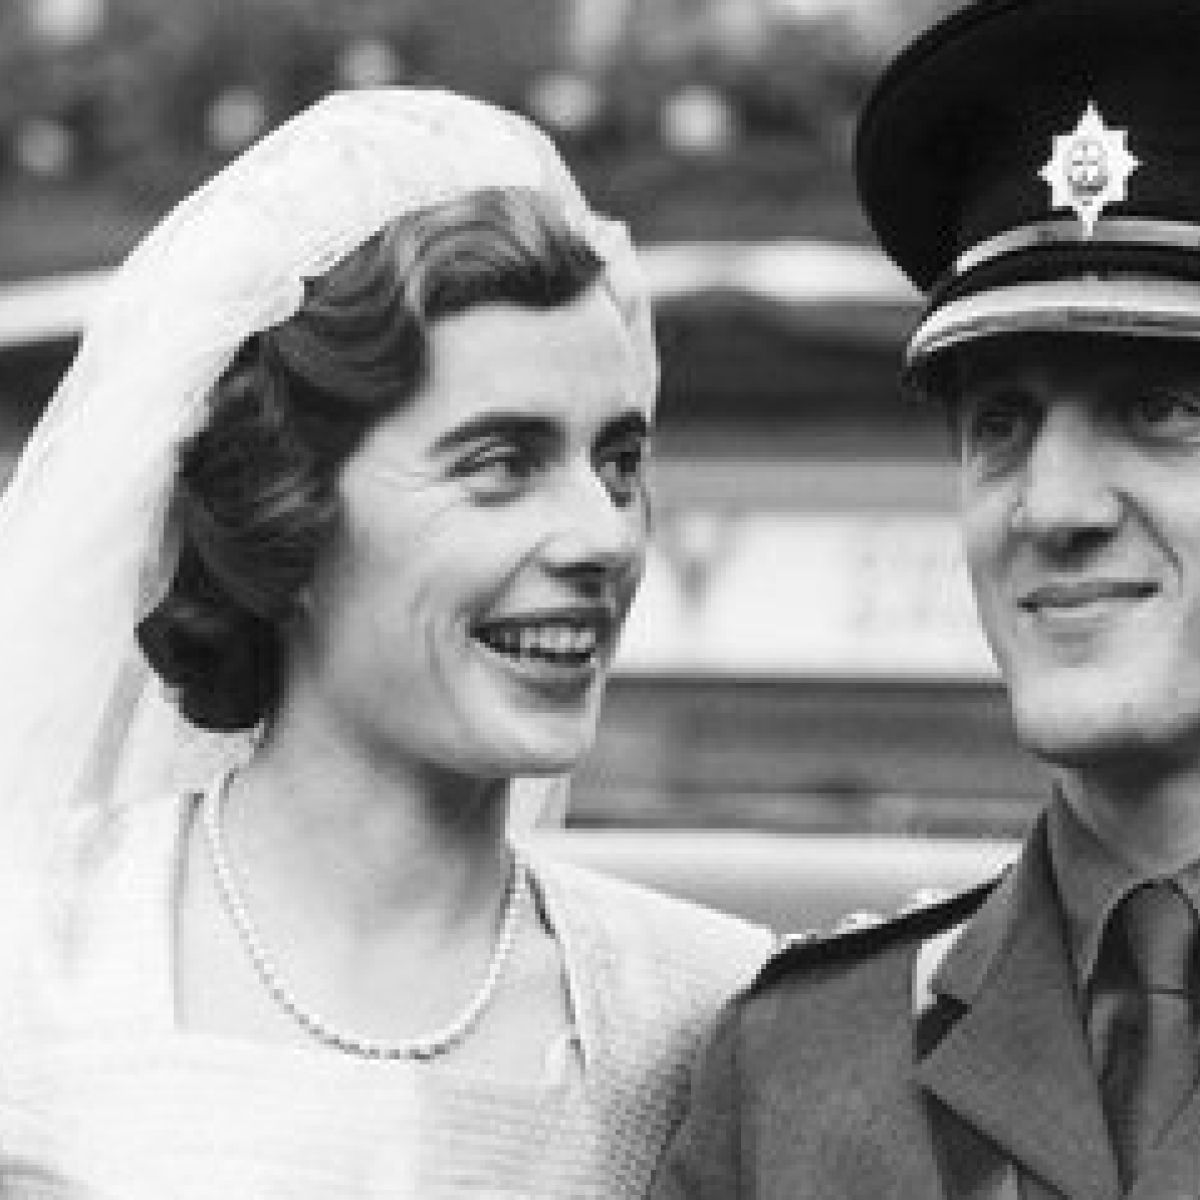 British Socialite Whose Father Lord Mountbatten And Son Were Killed By The Ira